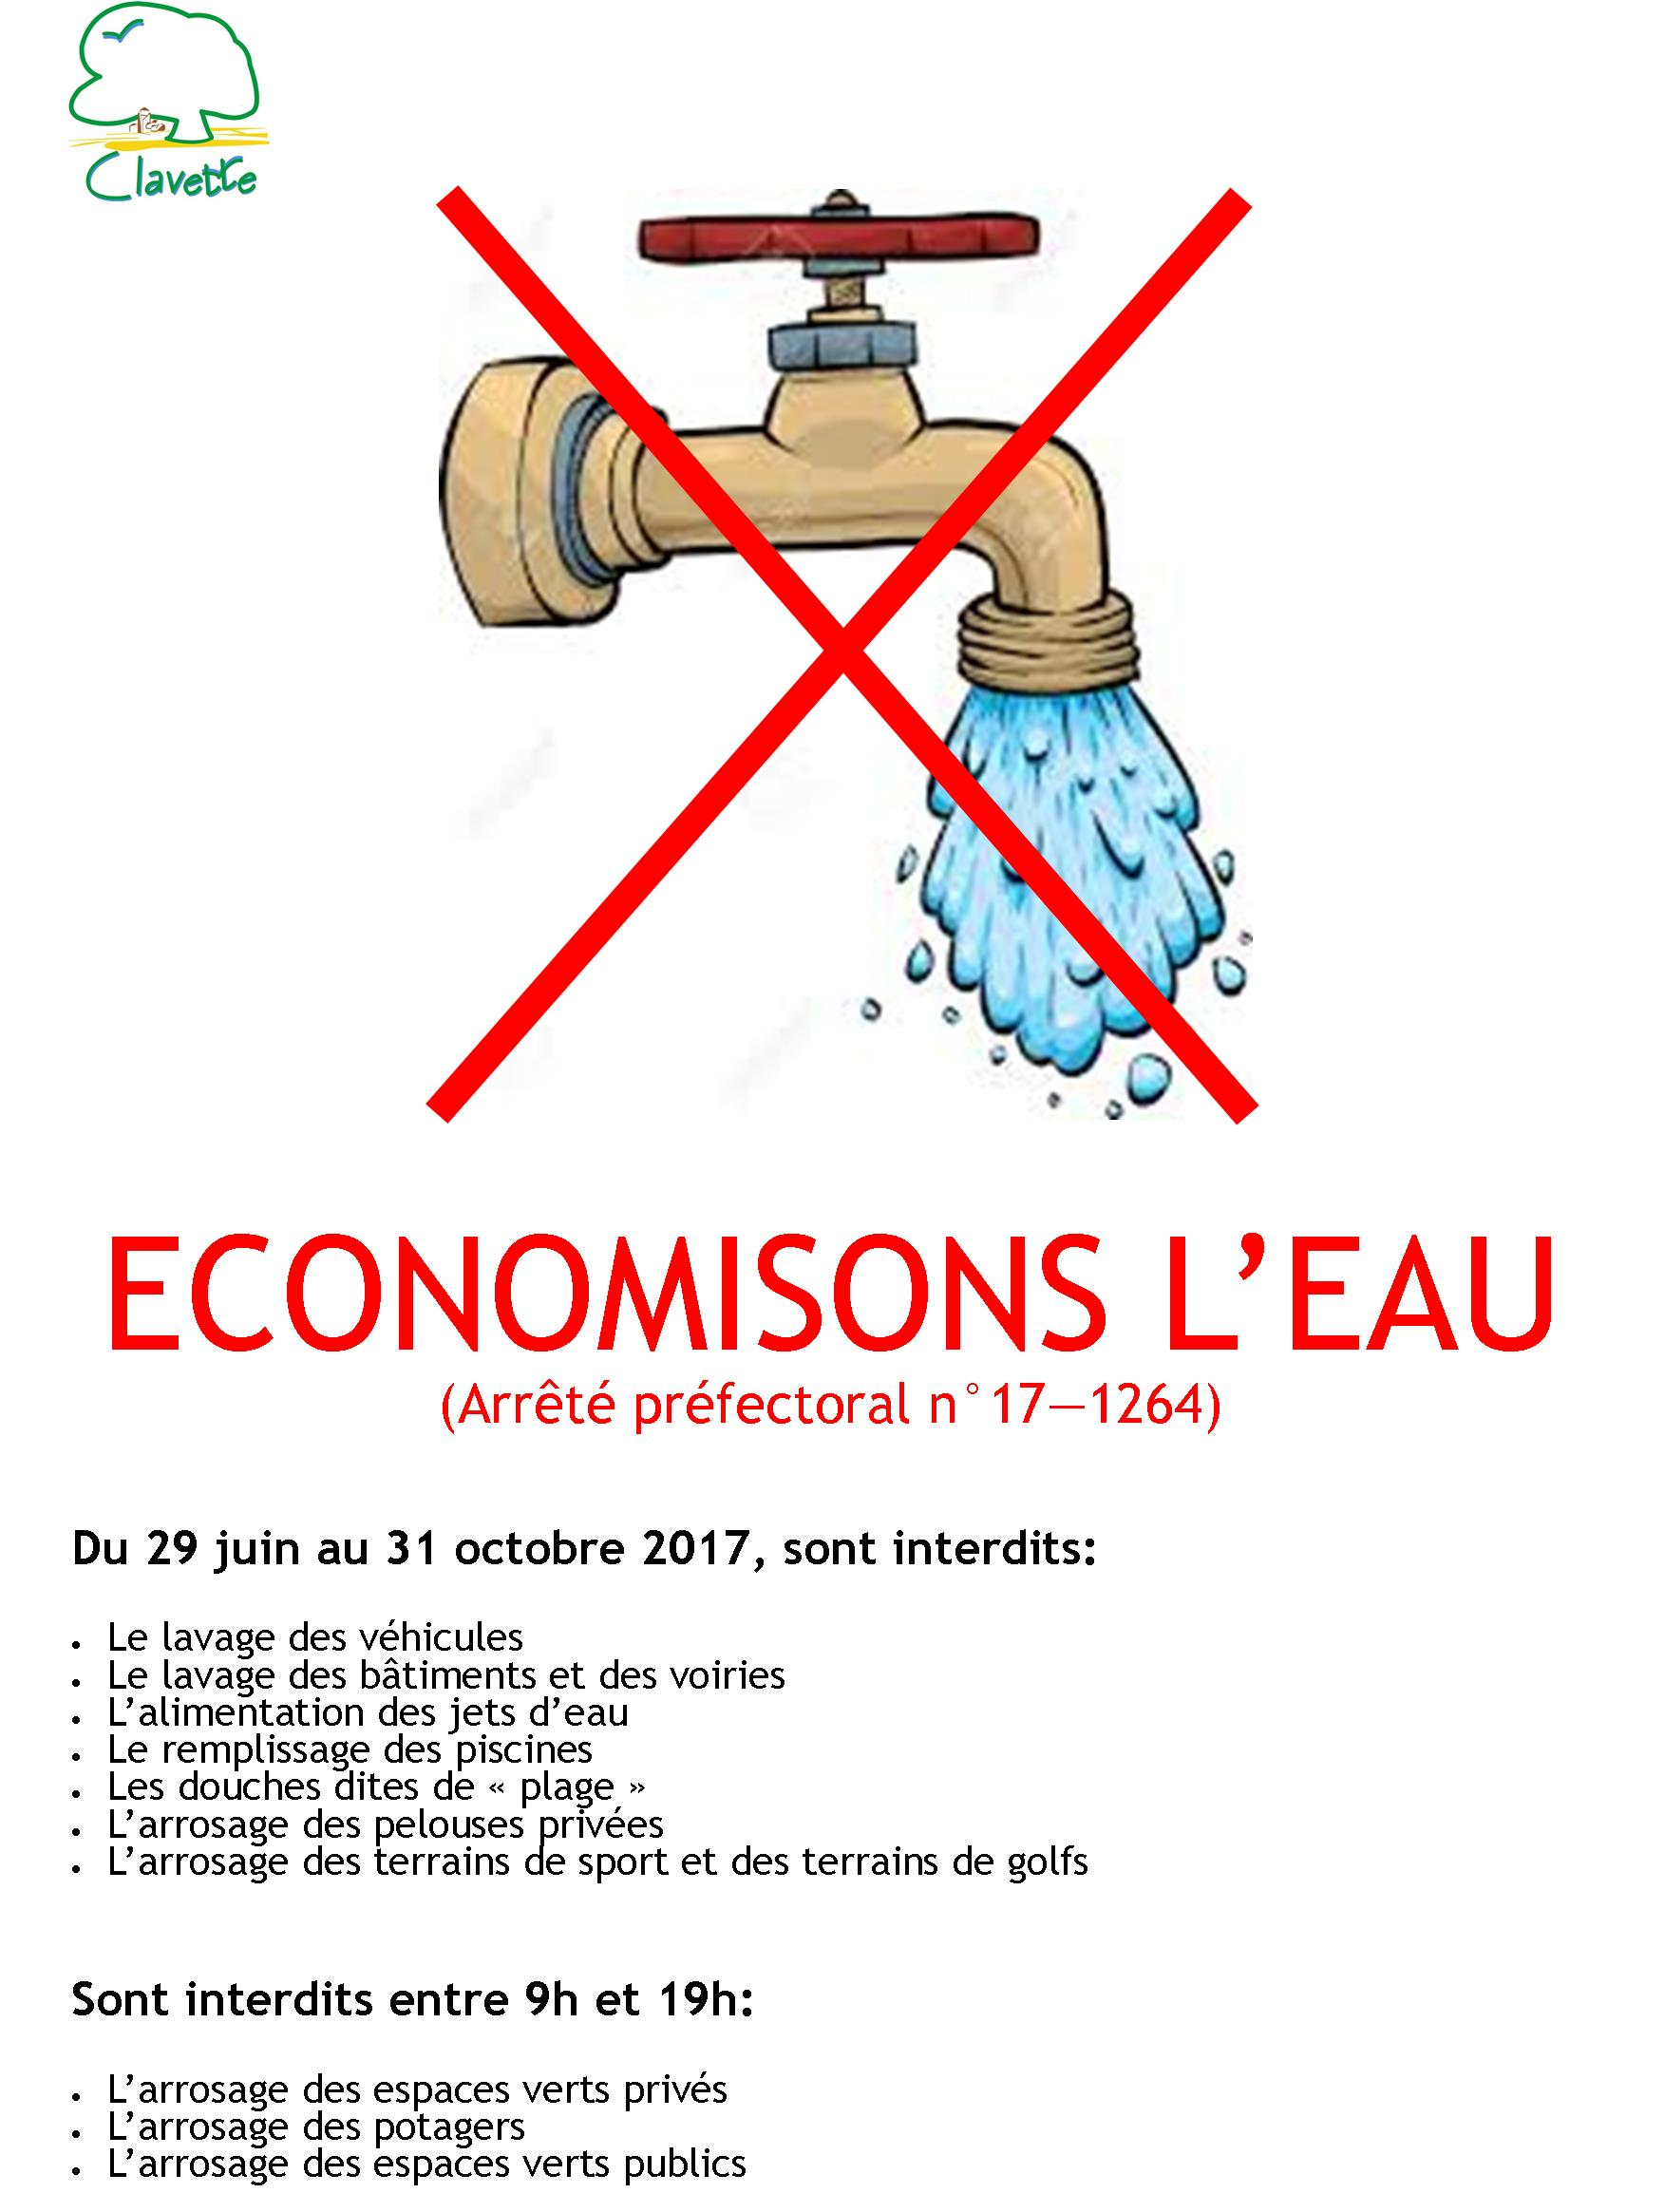 affiche_restriction_deau.jpg